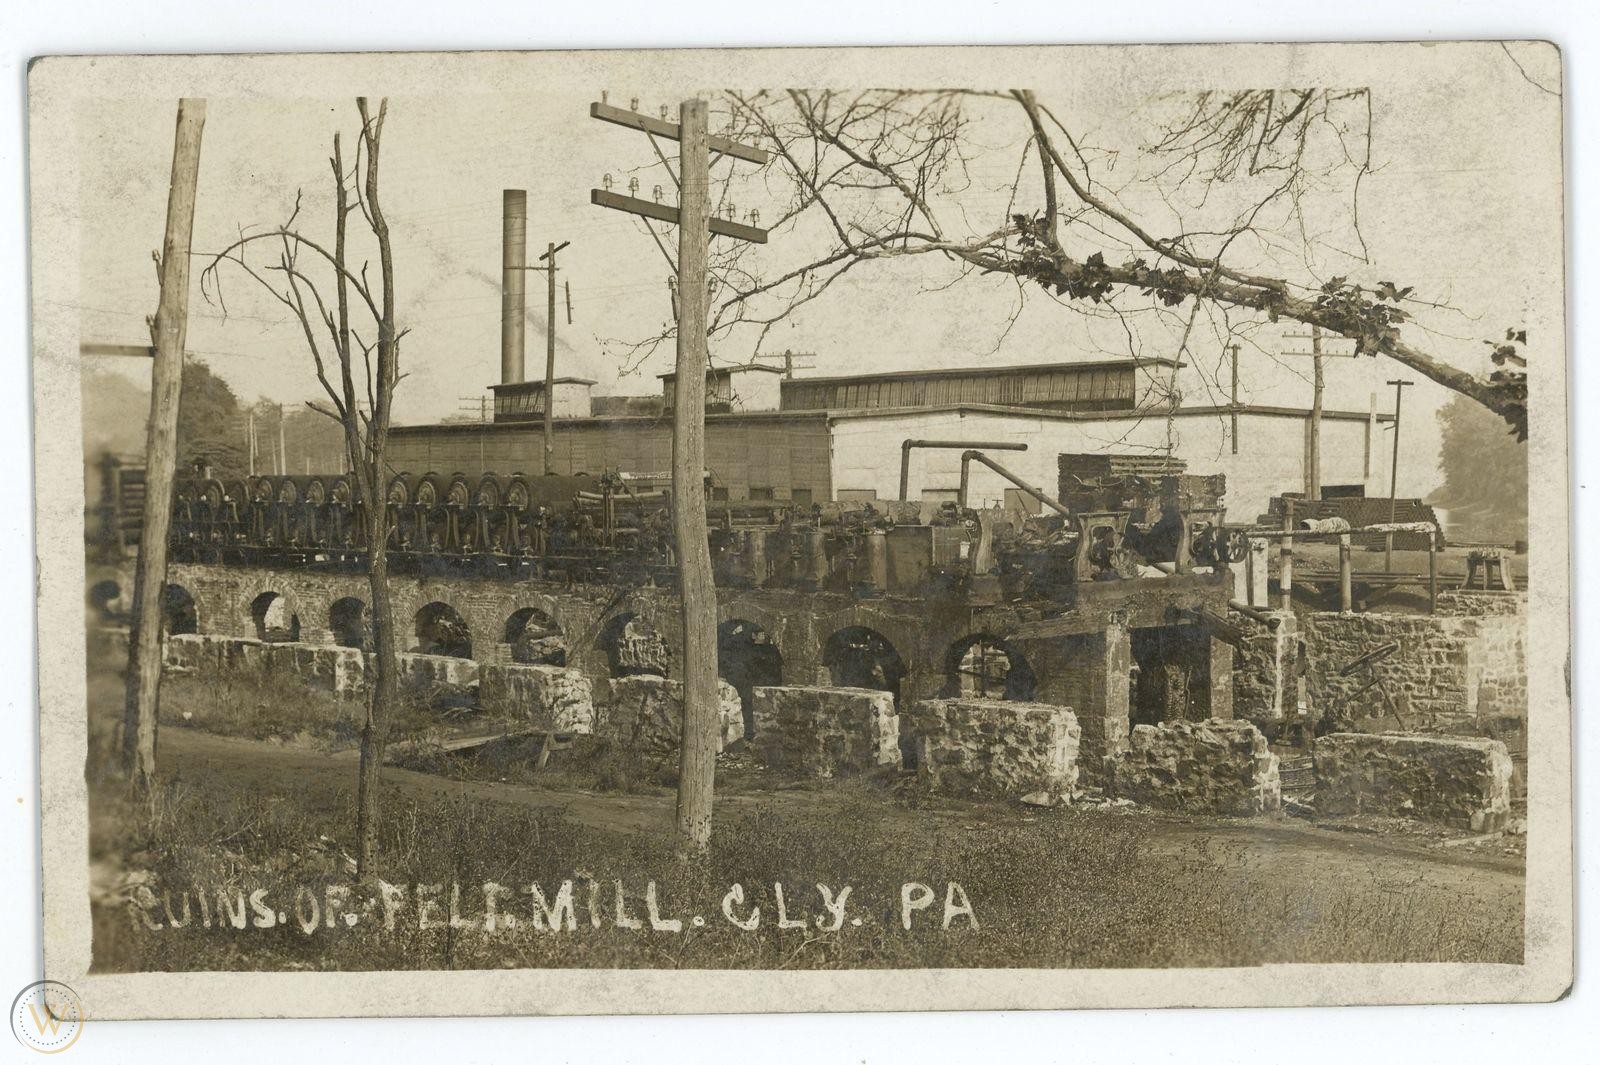 rppc felt mill ruins cly pa vintage 1 8ade11cecccbc72dfe55a15a769b9dbf